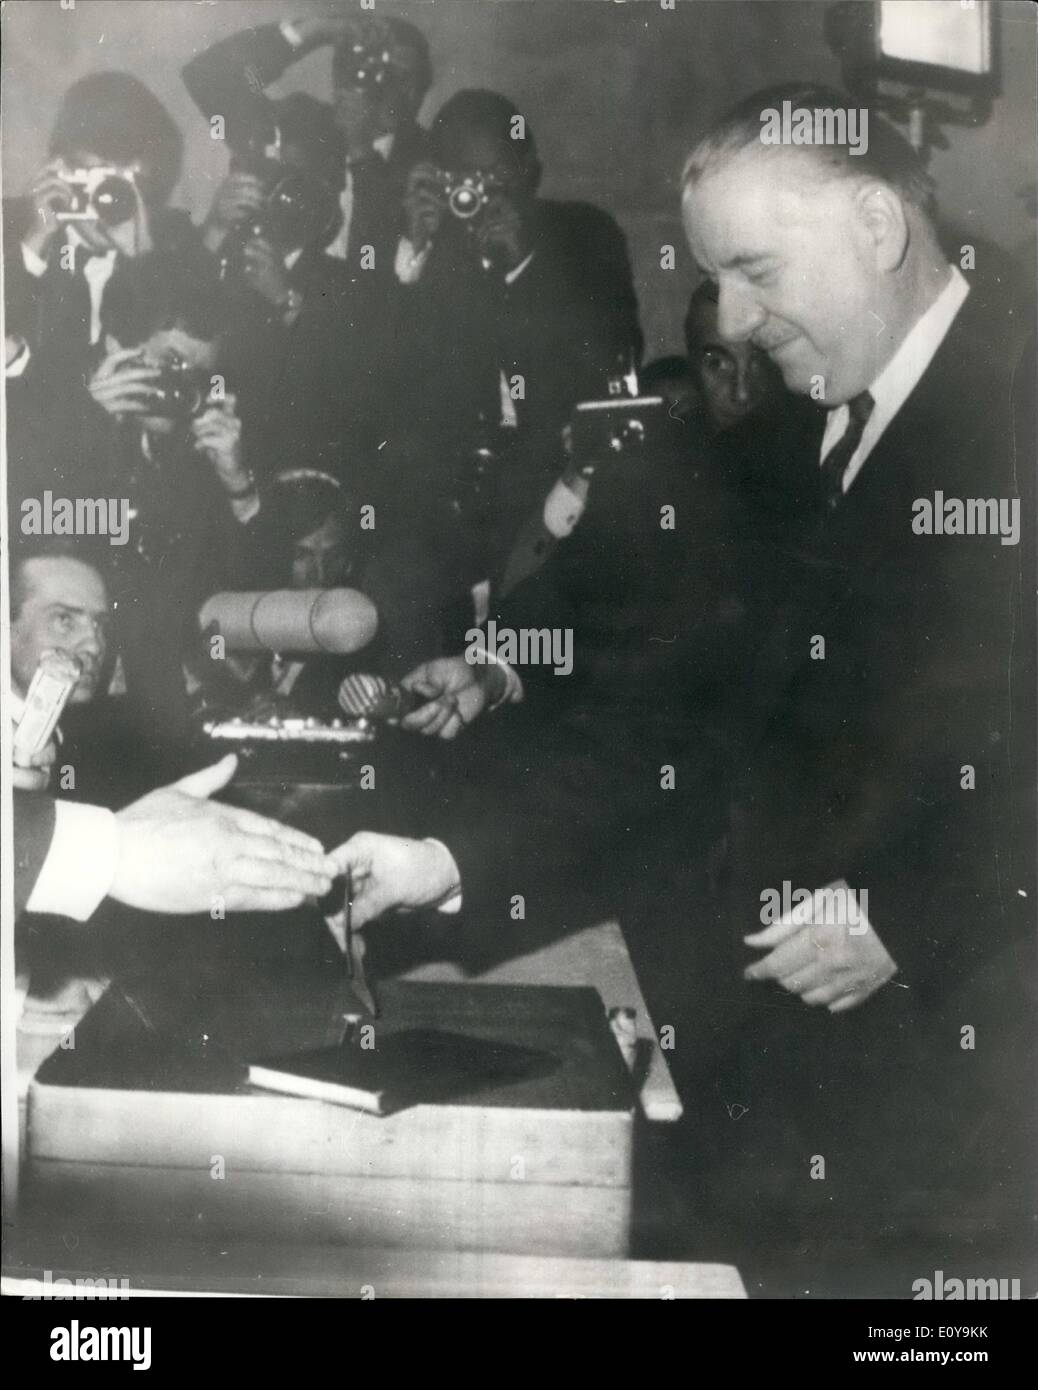 Jun. 06, 1969 - The electoral first round of the French Presidential Elections - Poher Casts his vote: Photo Shows Stock Photo